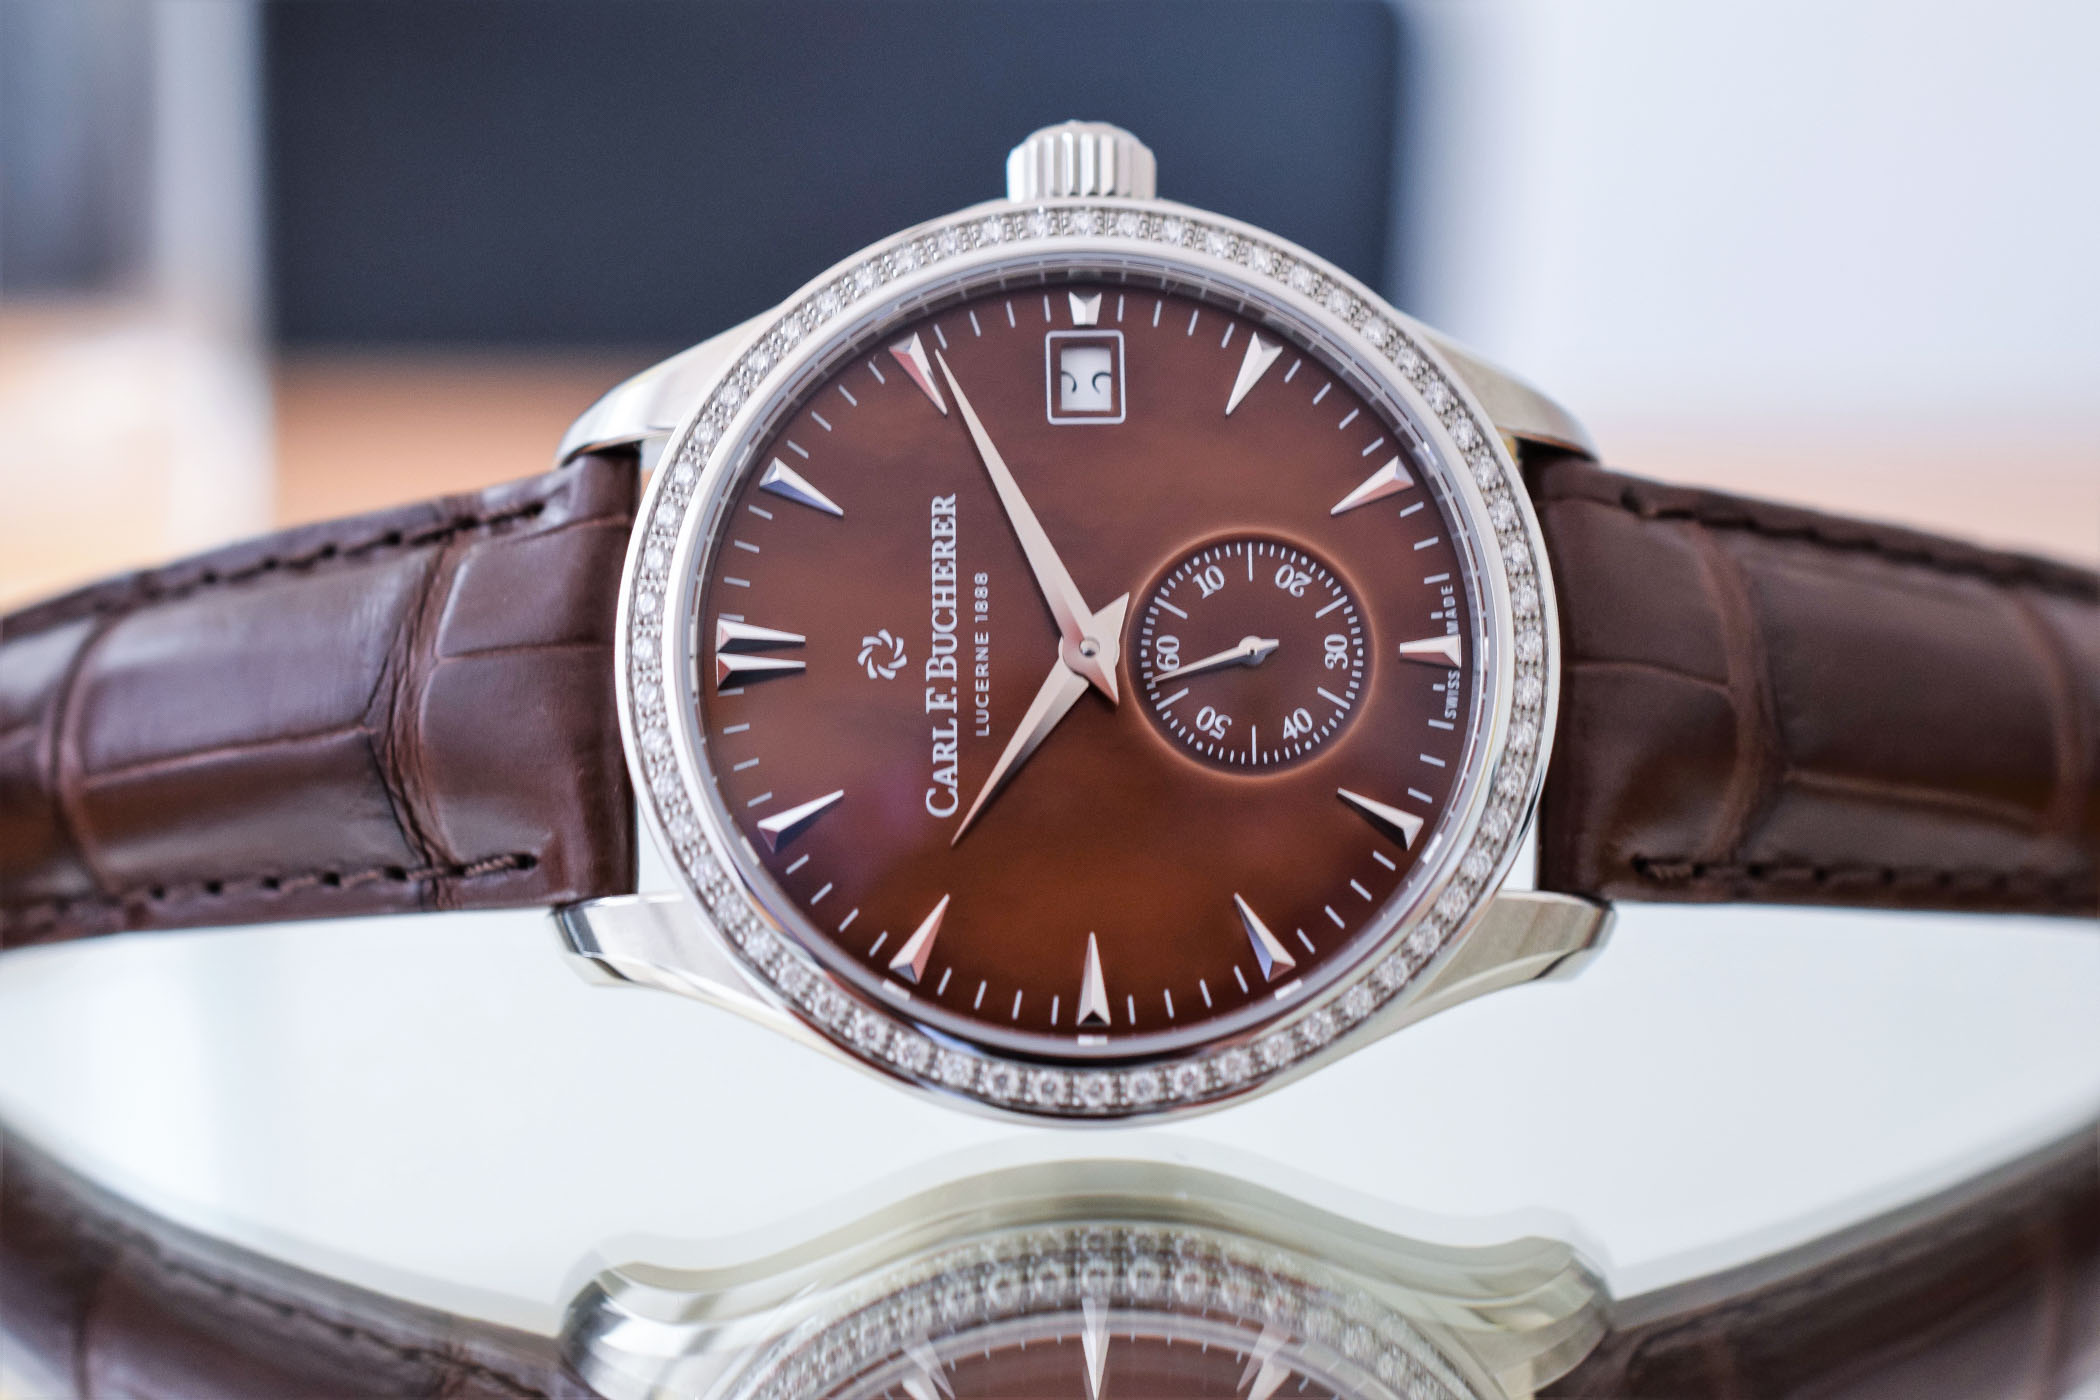 Carl F Bucherer Manero Peripheral Lady diamond bezel